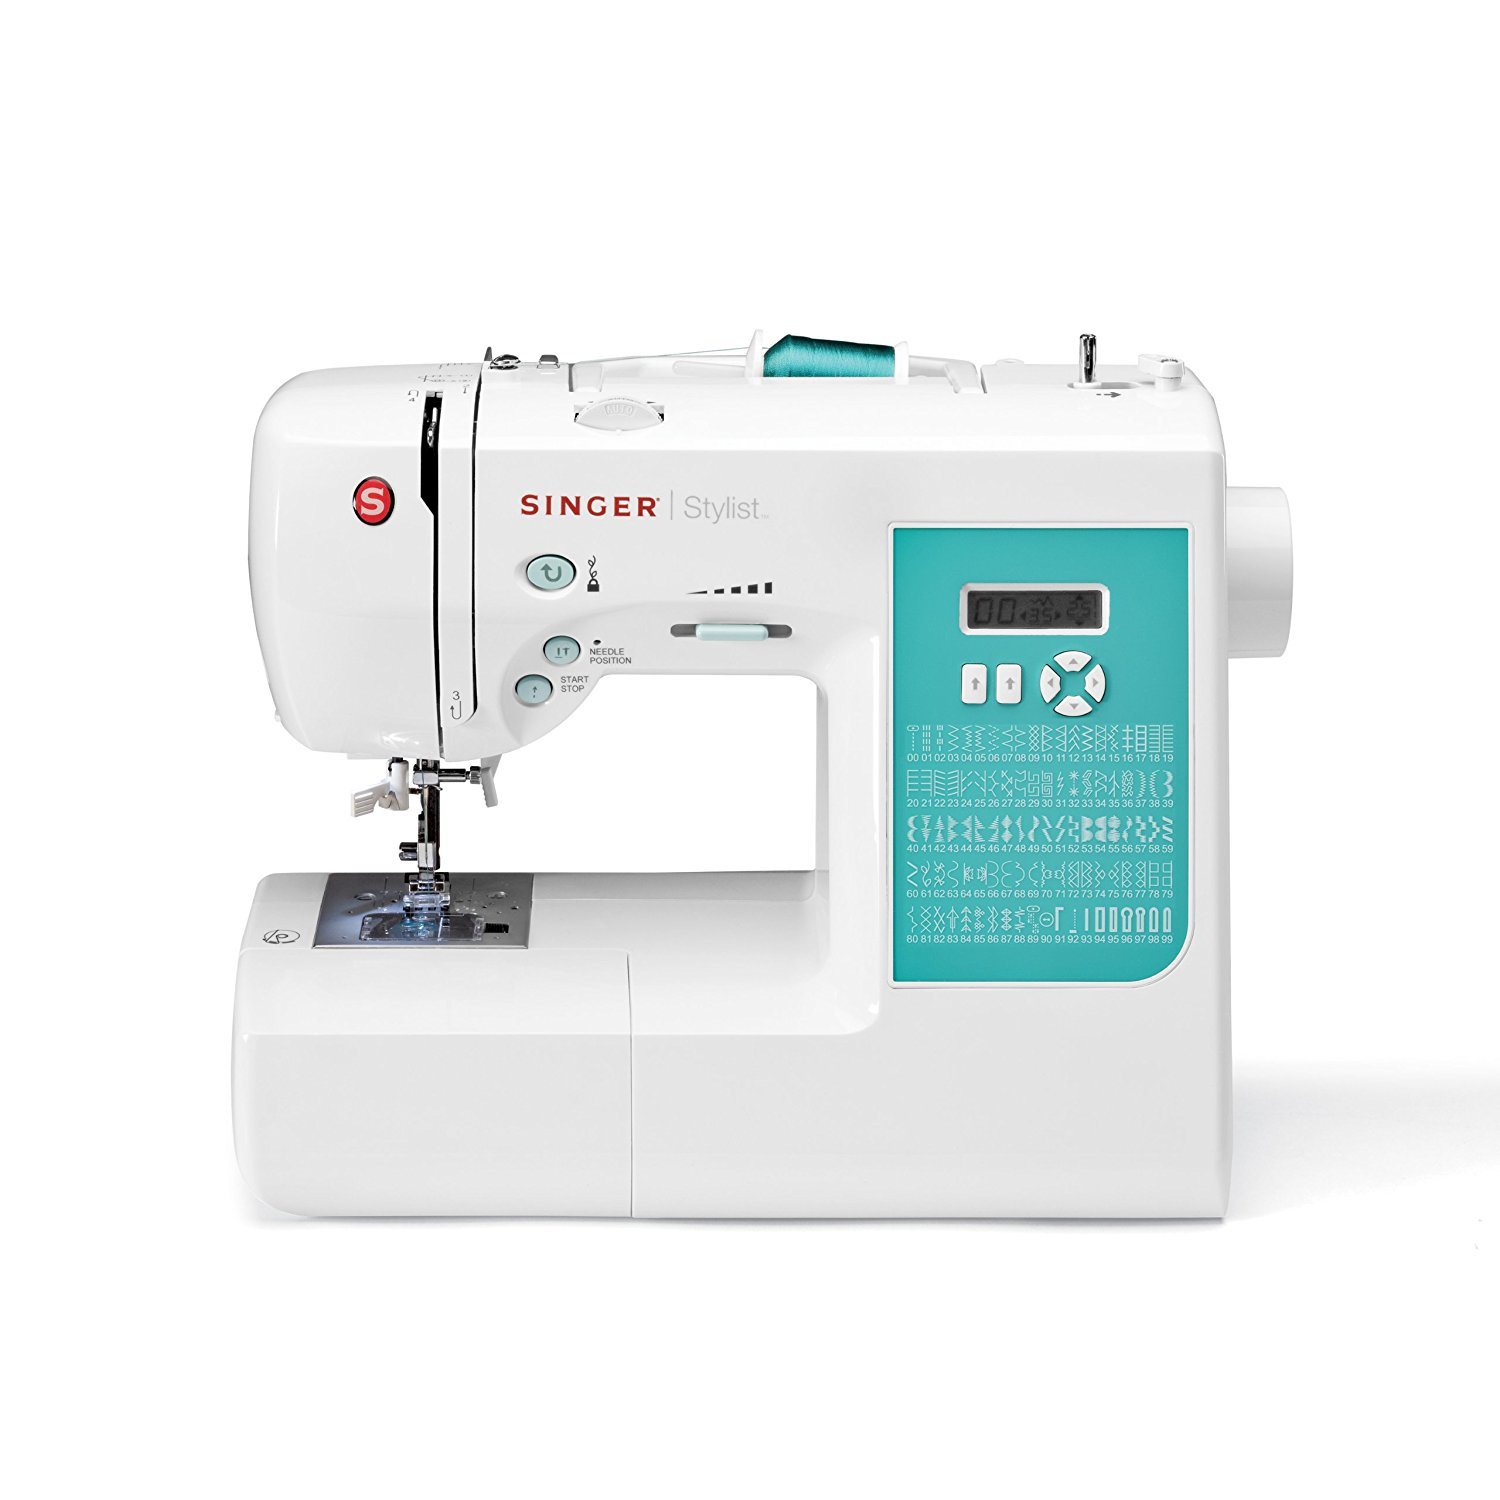 Sewing Machines For Kids